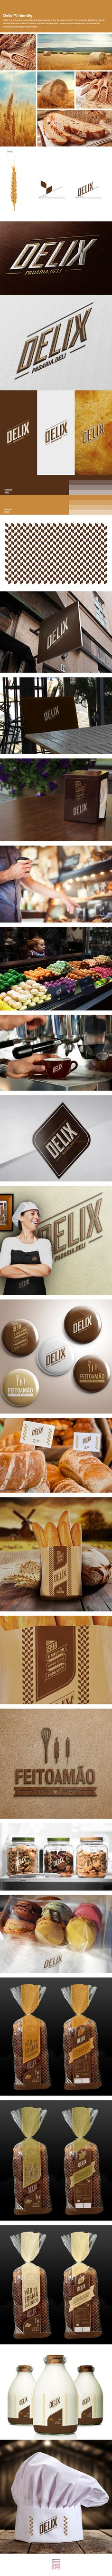 Delix is a chic bakery and deli retail space based in Rio de janeiro, Brazil. The corporate identity is directly derived from the profile of the firm: A small business which deals gourmet breads and prides itself on handmade and simple sweet treats.Cred…